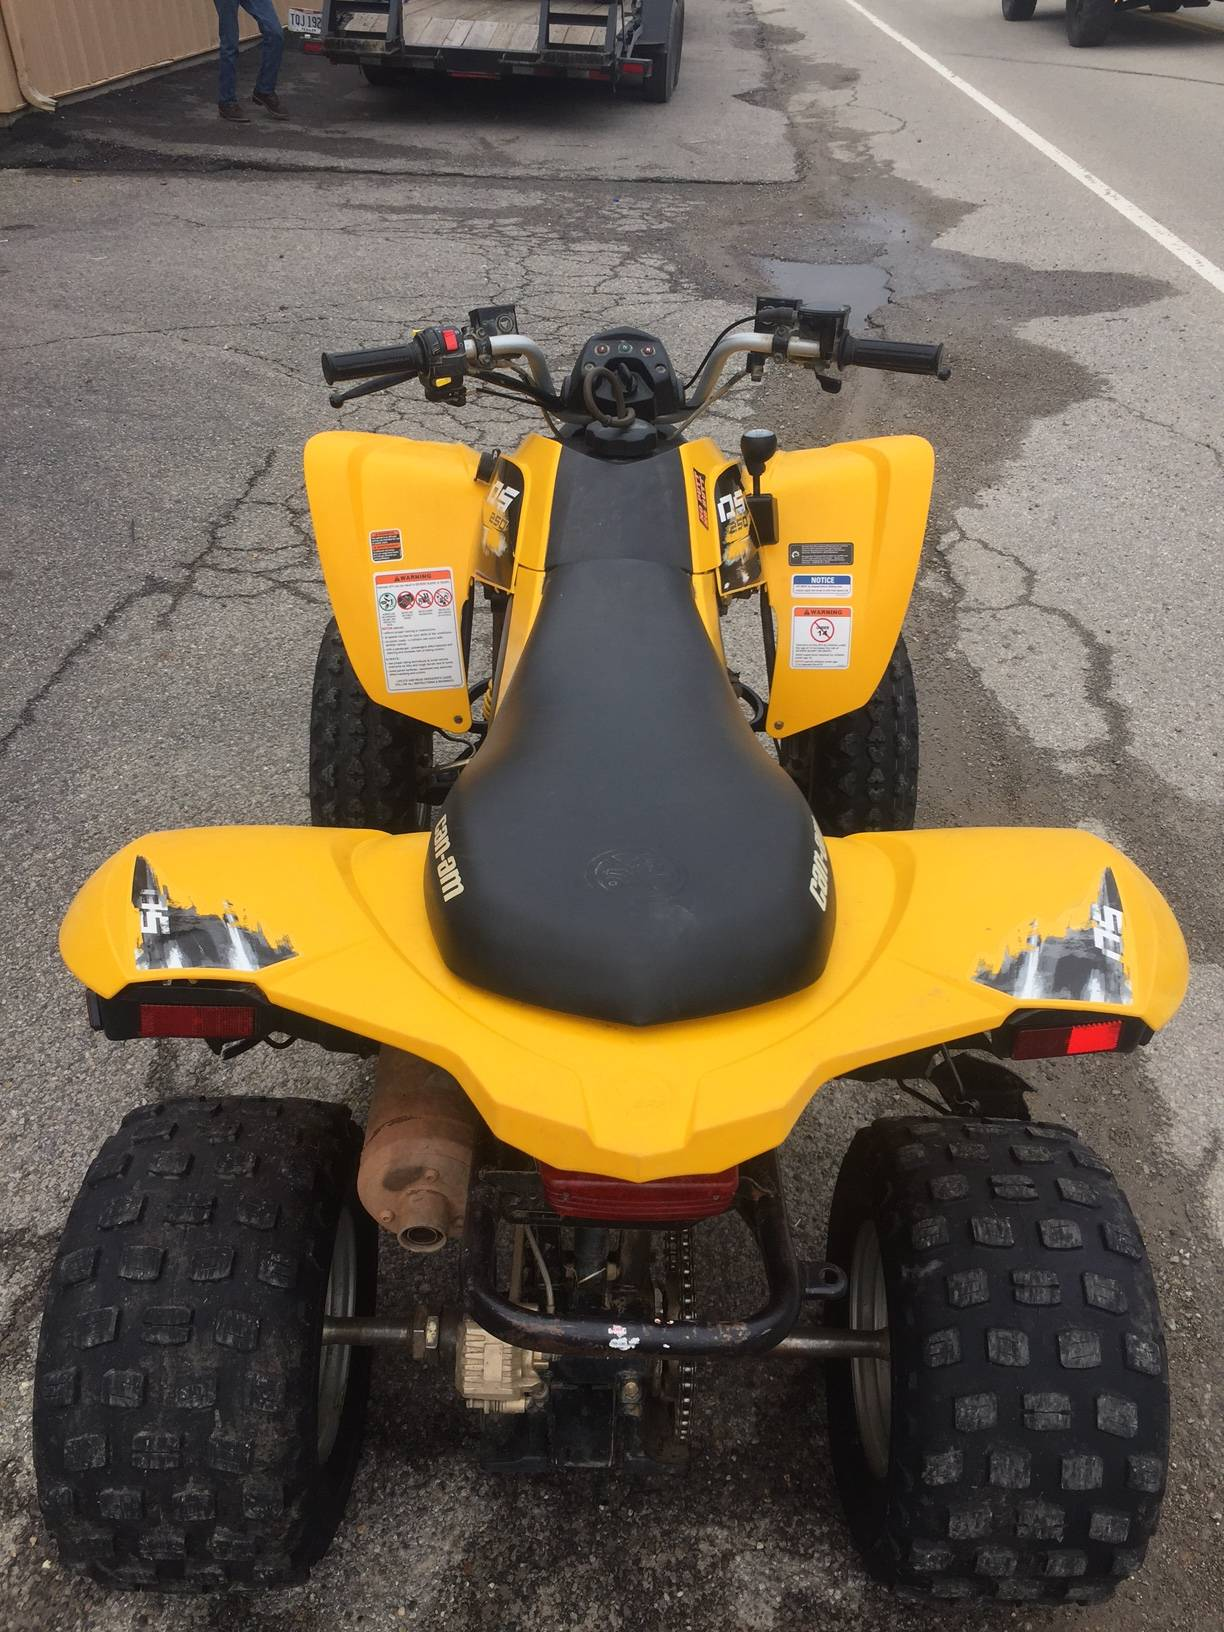 ... manual with reverse sm6 Array - 2017 can am ds 250 atvs claysville  pennsylvania xw613 rh xtremeofwashingtoncounty com